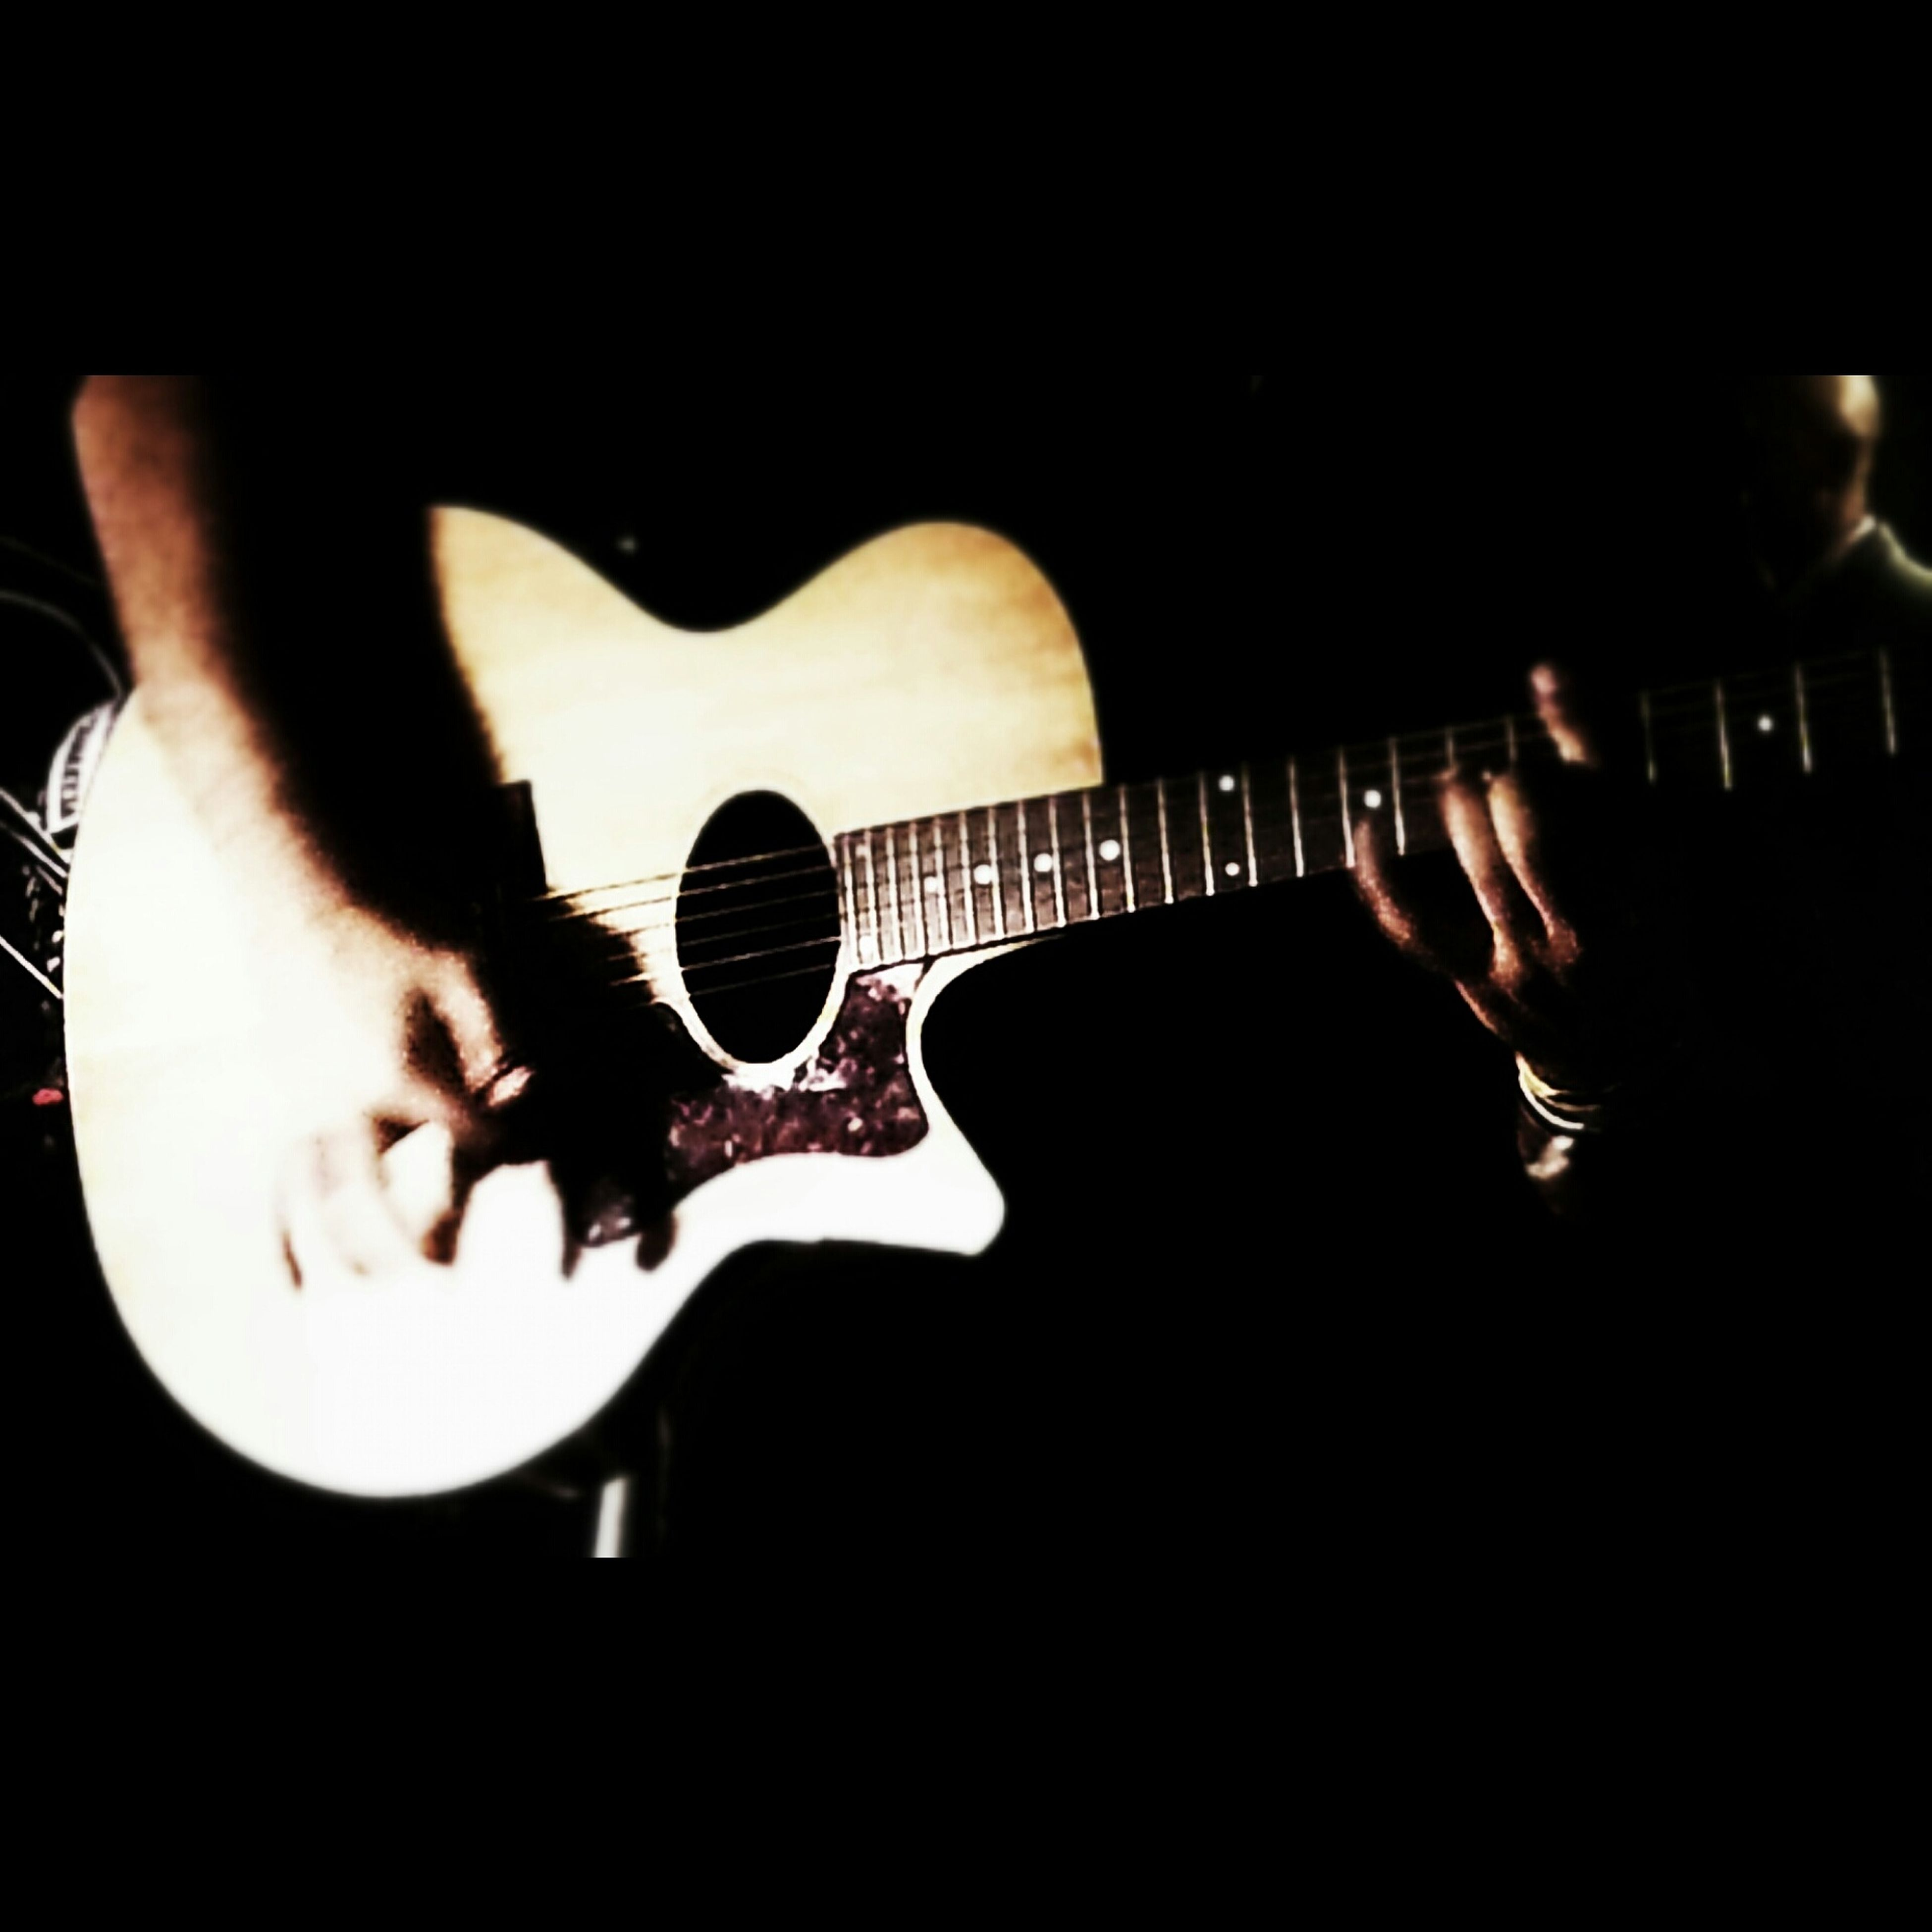 indoors, lifestyles, music, illuminated, leisure activity, arts culture and entertainment, holding, men, musical instrument, person, technology, night, photographing, photography themes, guitar, musician, dark, skill